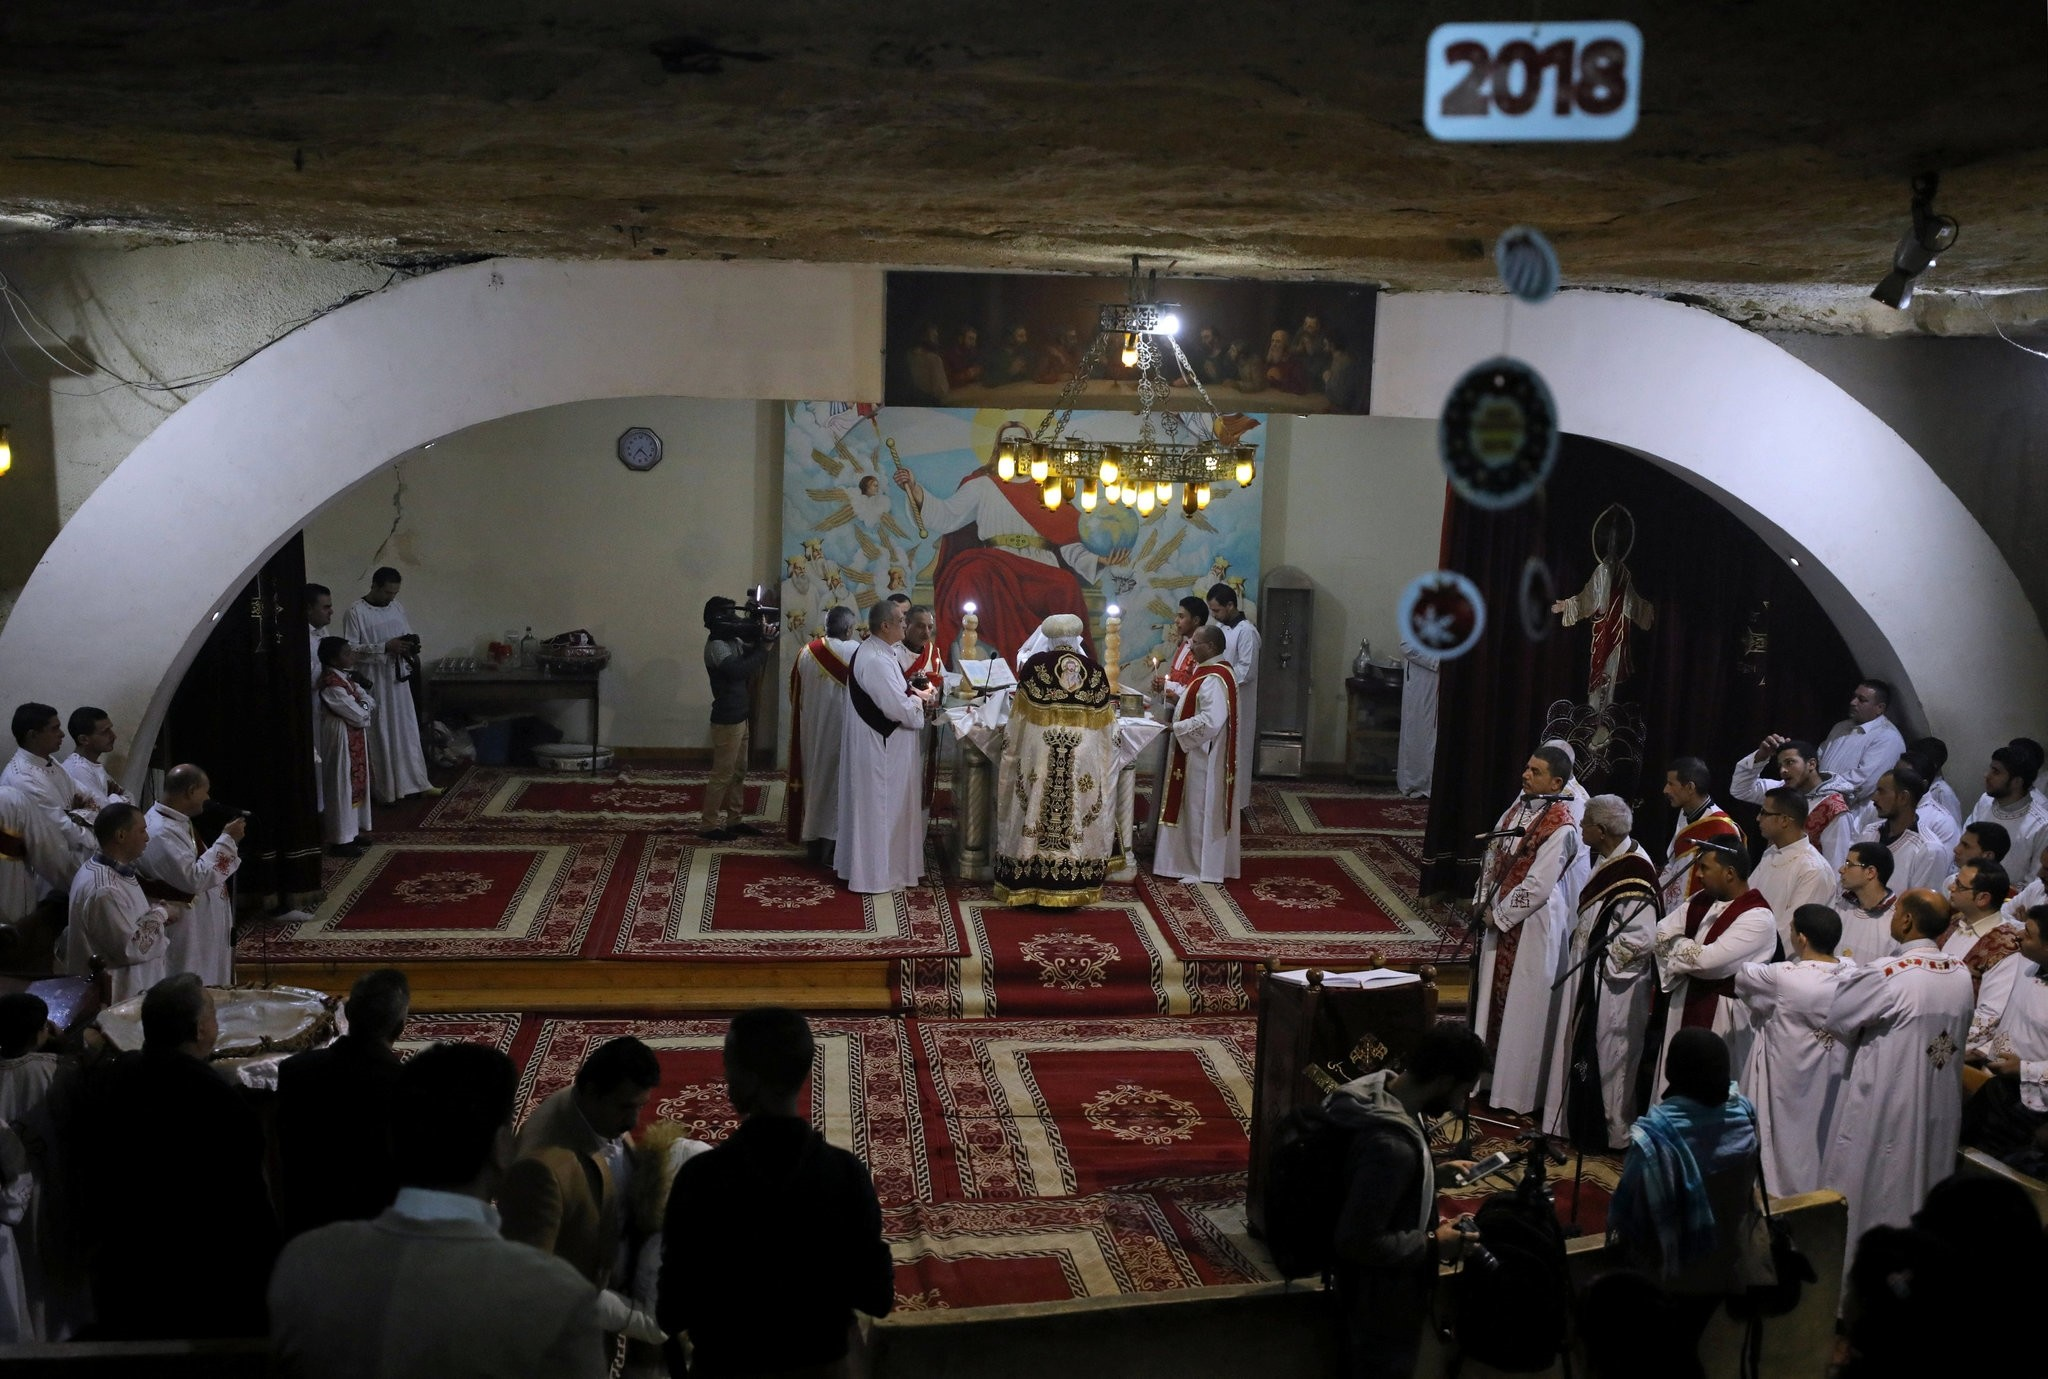 Coptic Orthodox Christian priests and deacons attend Christmas eve mass at a church in Saint Samaan the tanner Monastery in Cairo, Egypt January 6, 2018. (REUTERS Photo)